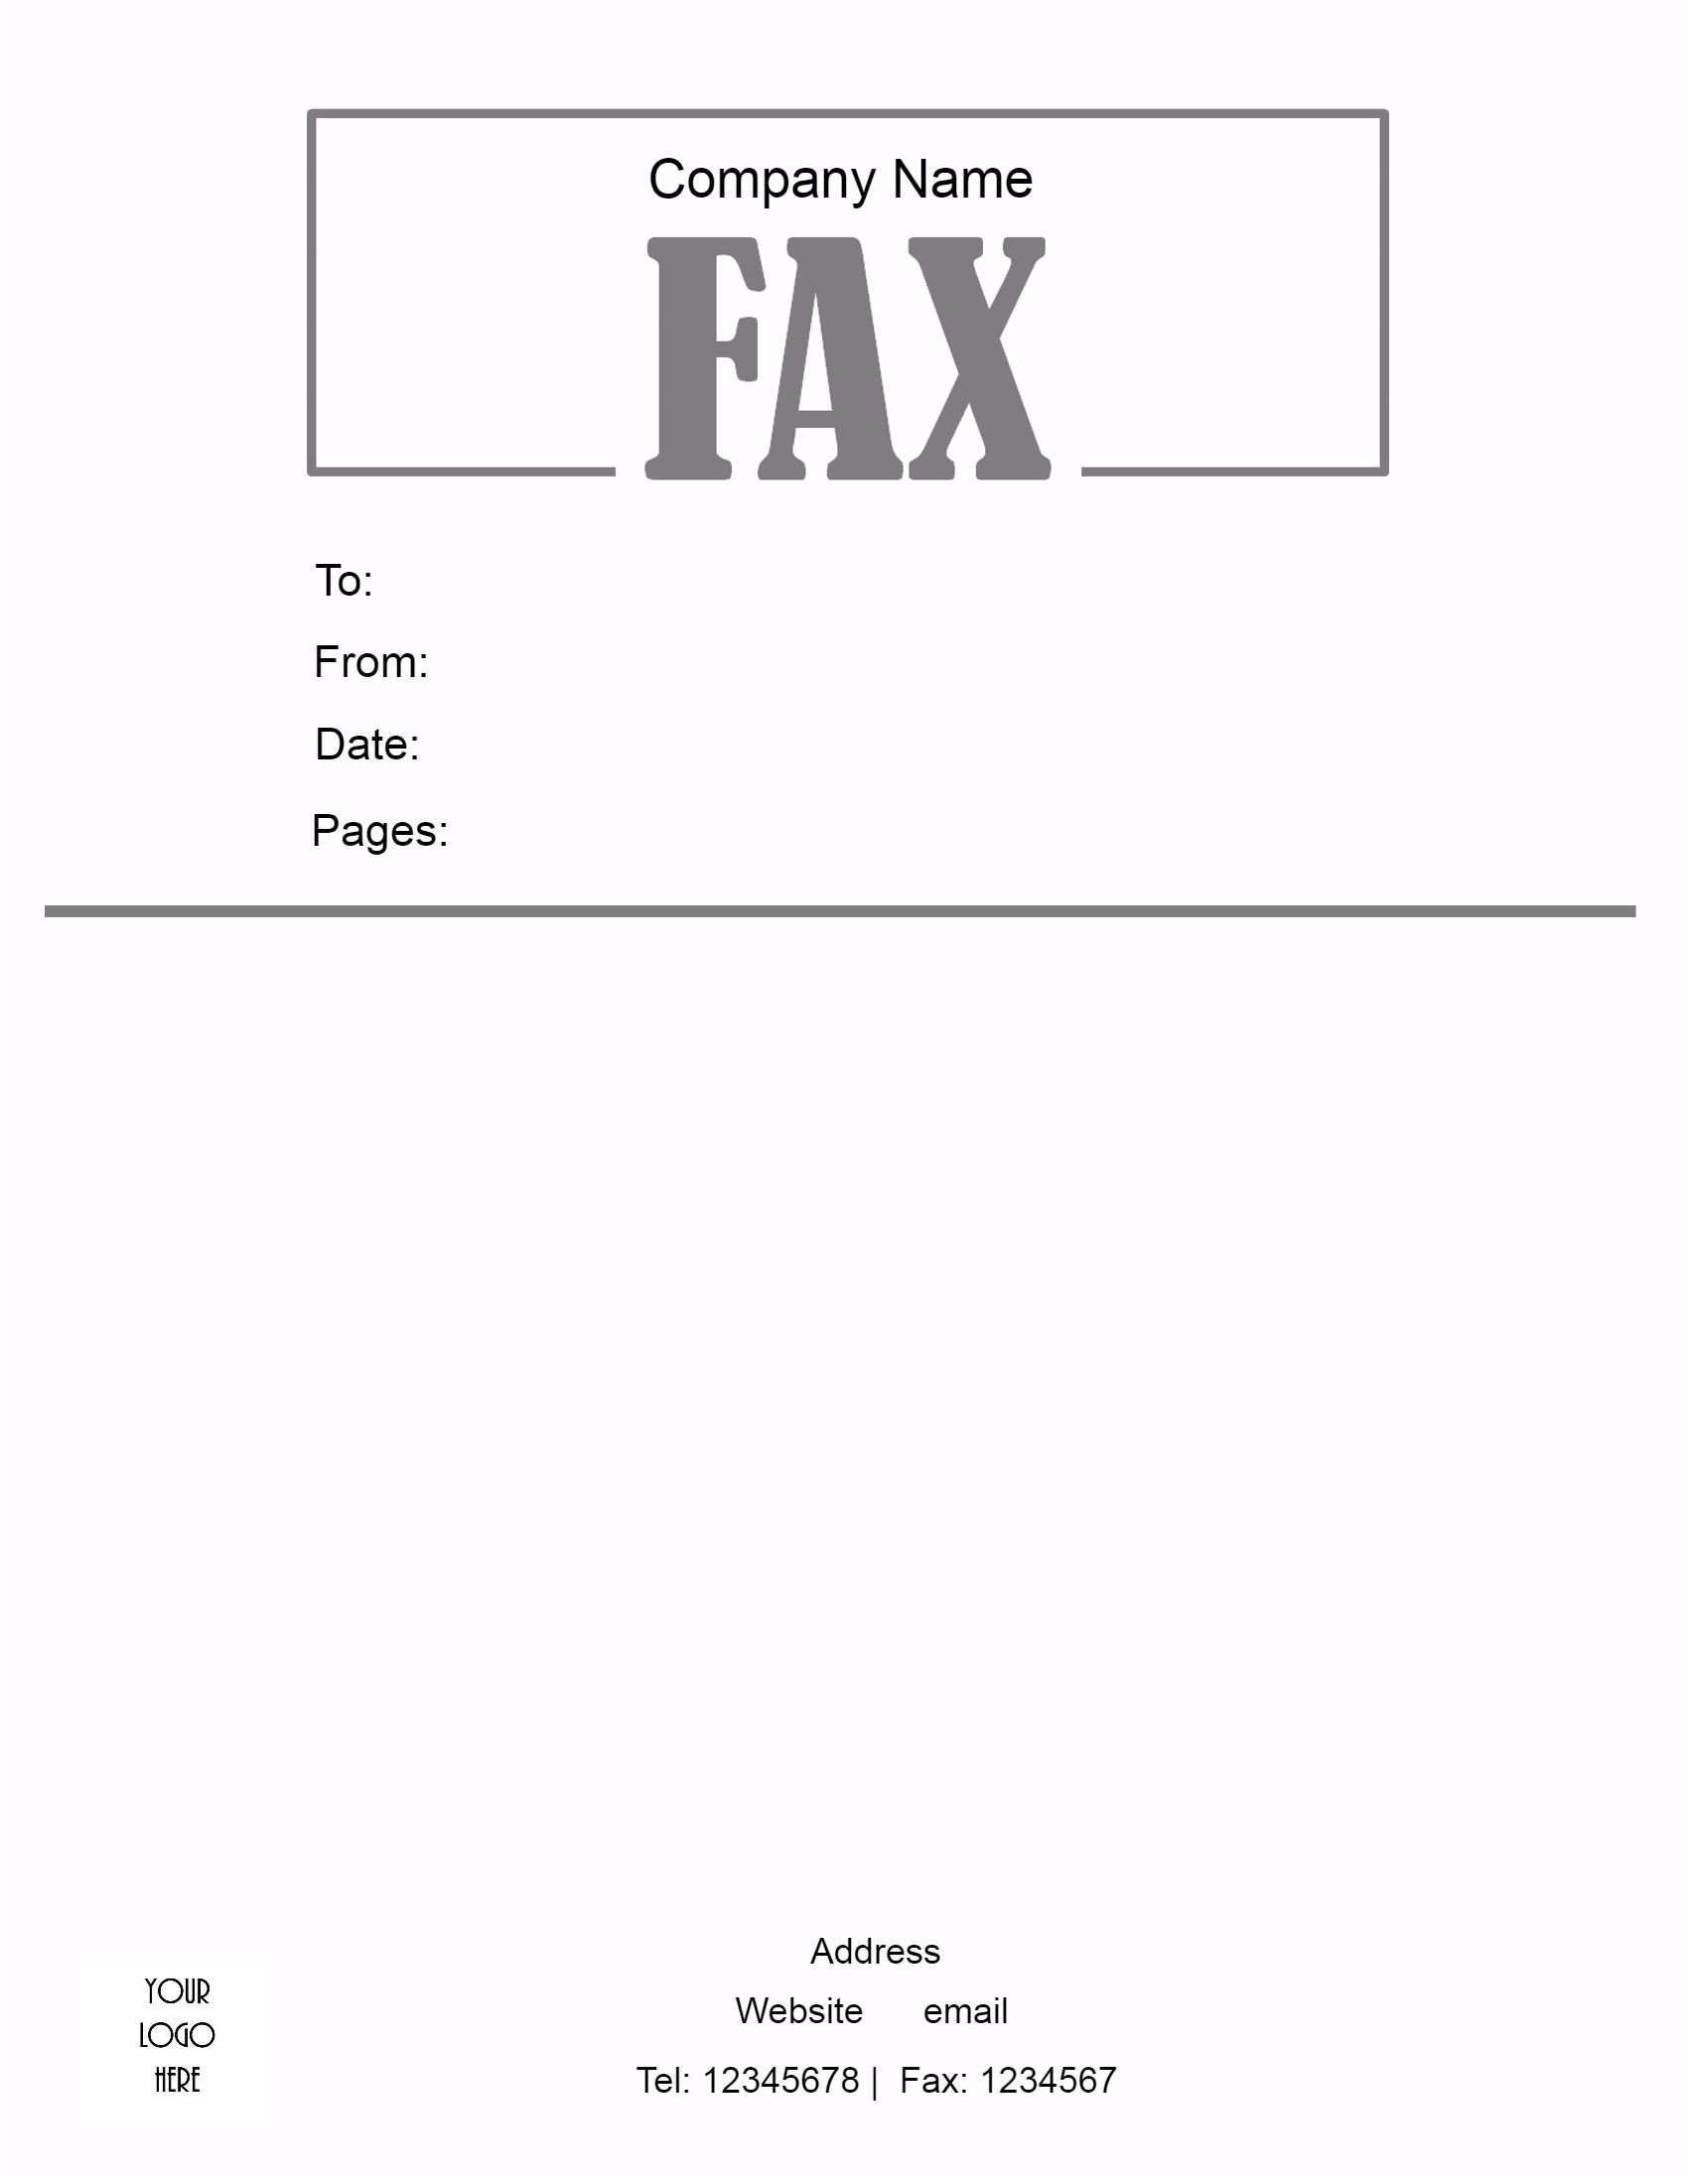 Free Fax Cover Sheet Template – Fax Cover Sheet Free Template